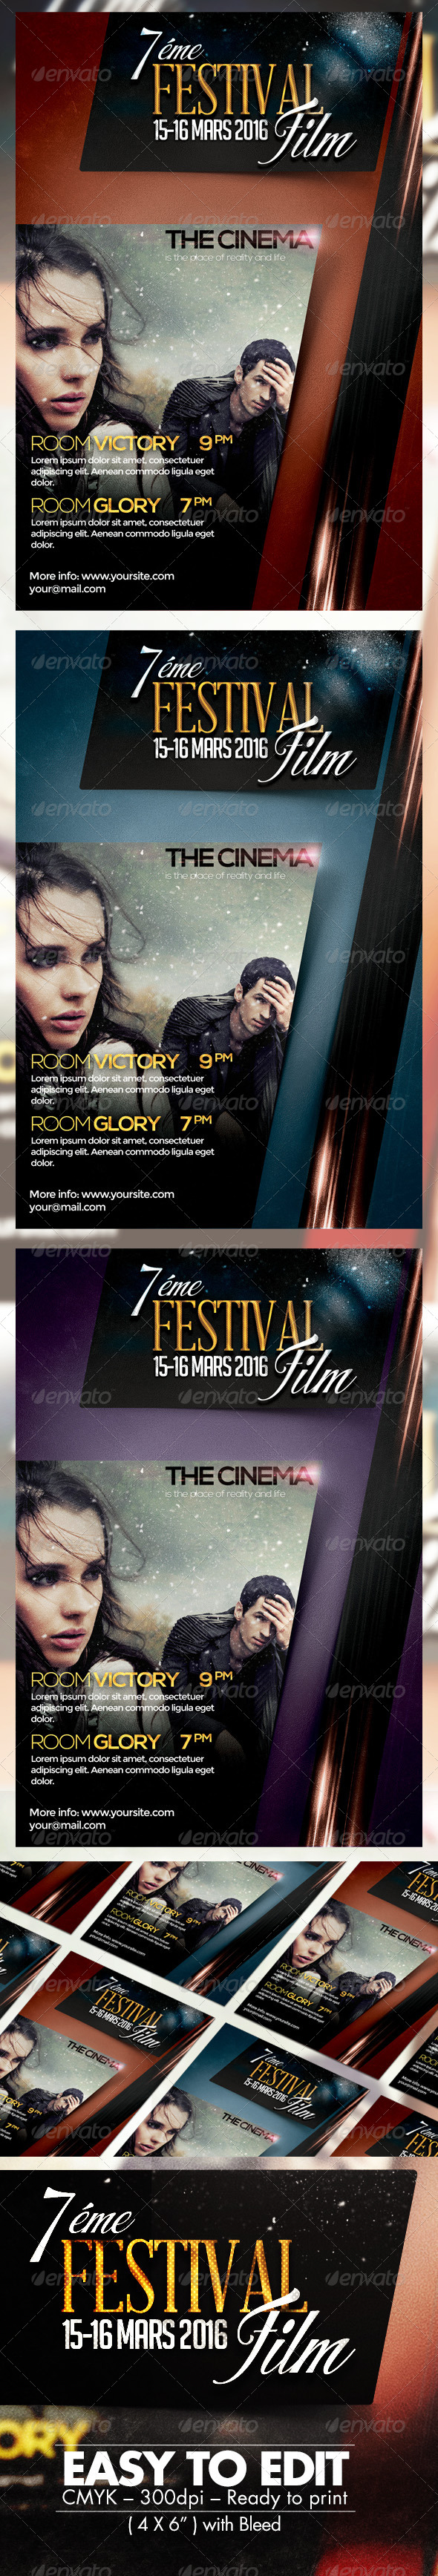 Festival Film Flyer Template